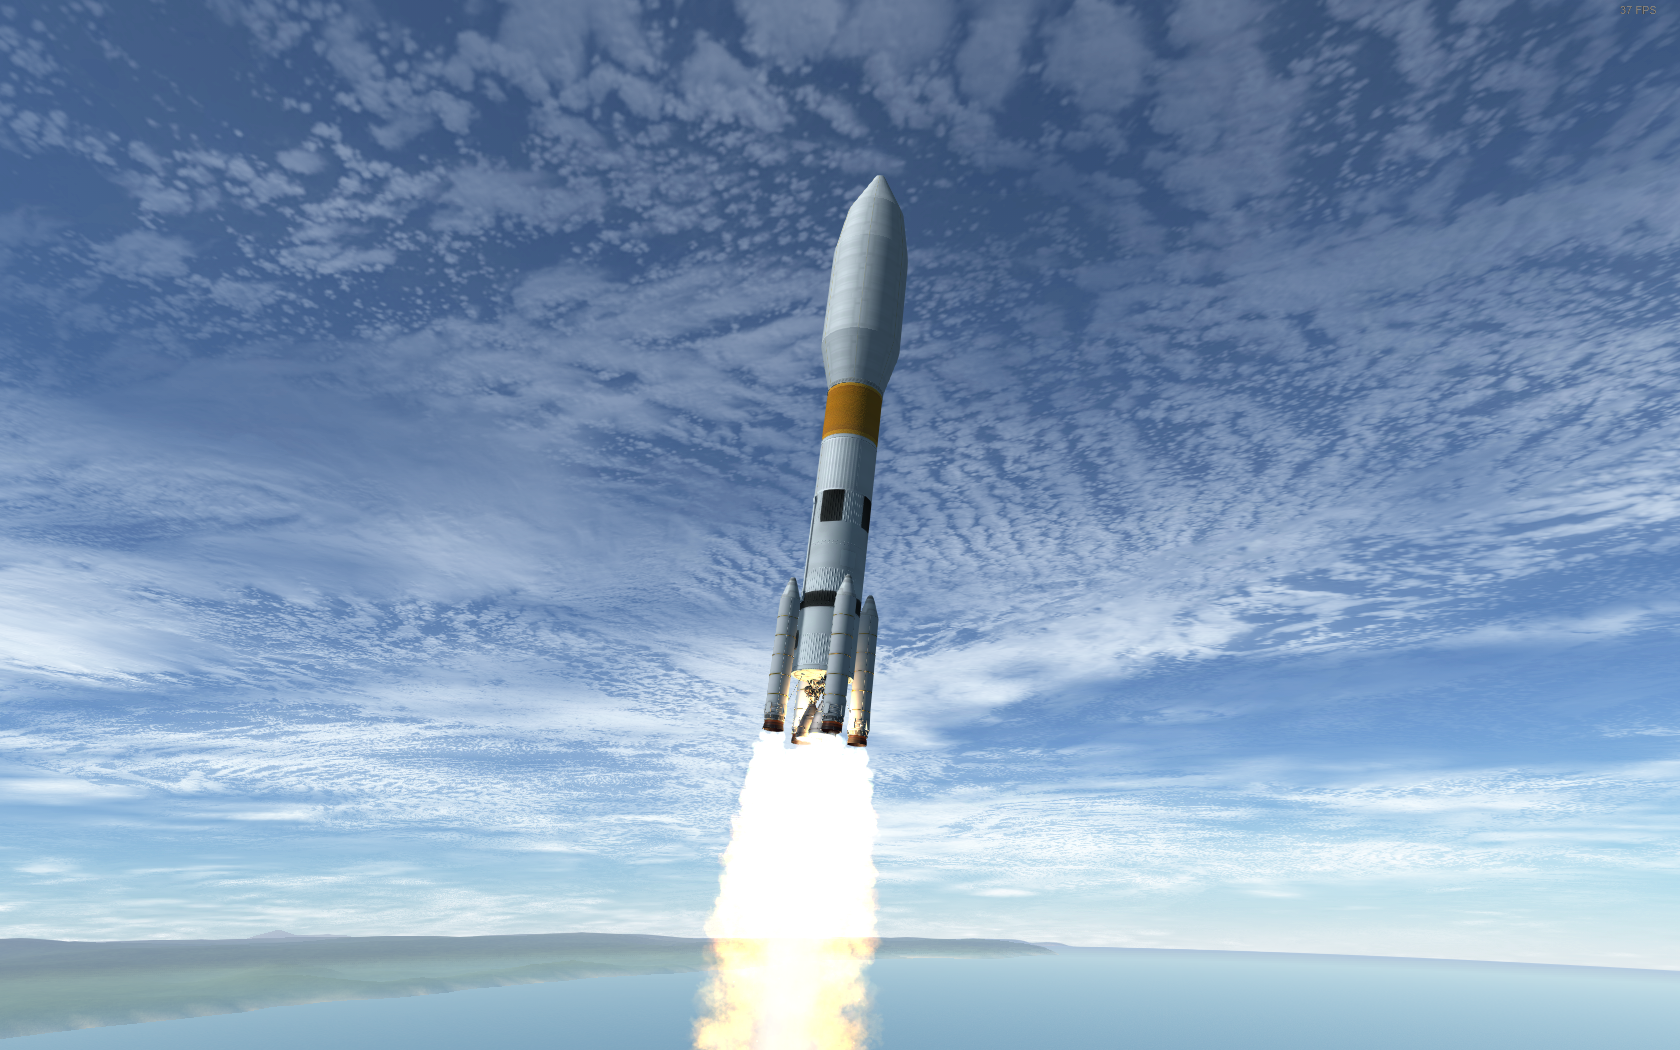 Core section launch